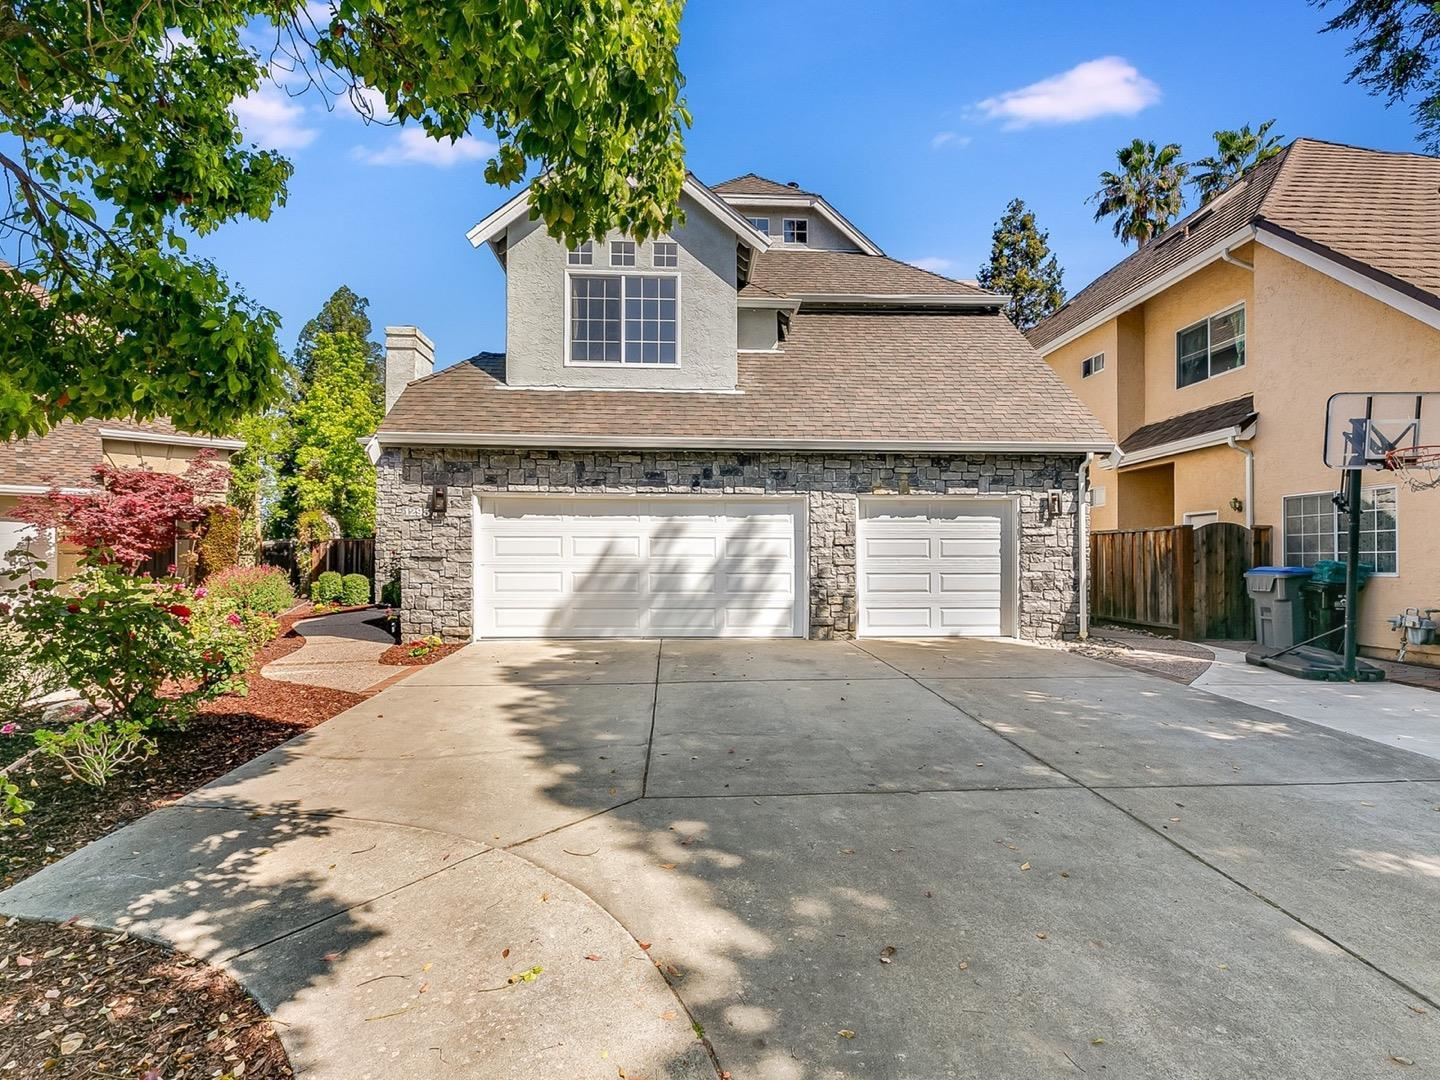 1293 Mcabee Estates PL, San Jose, CA 95120 - MLS#: ML81839278